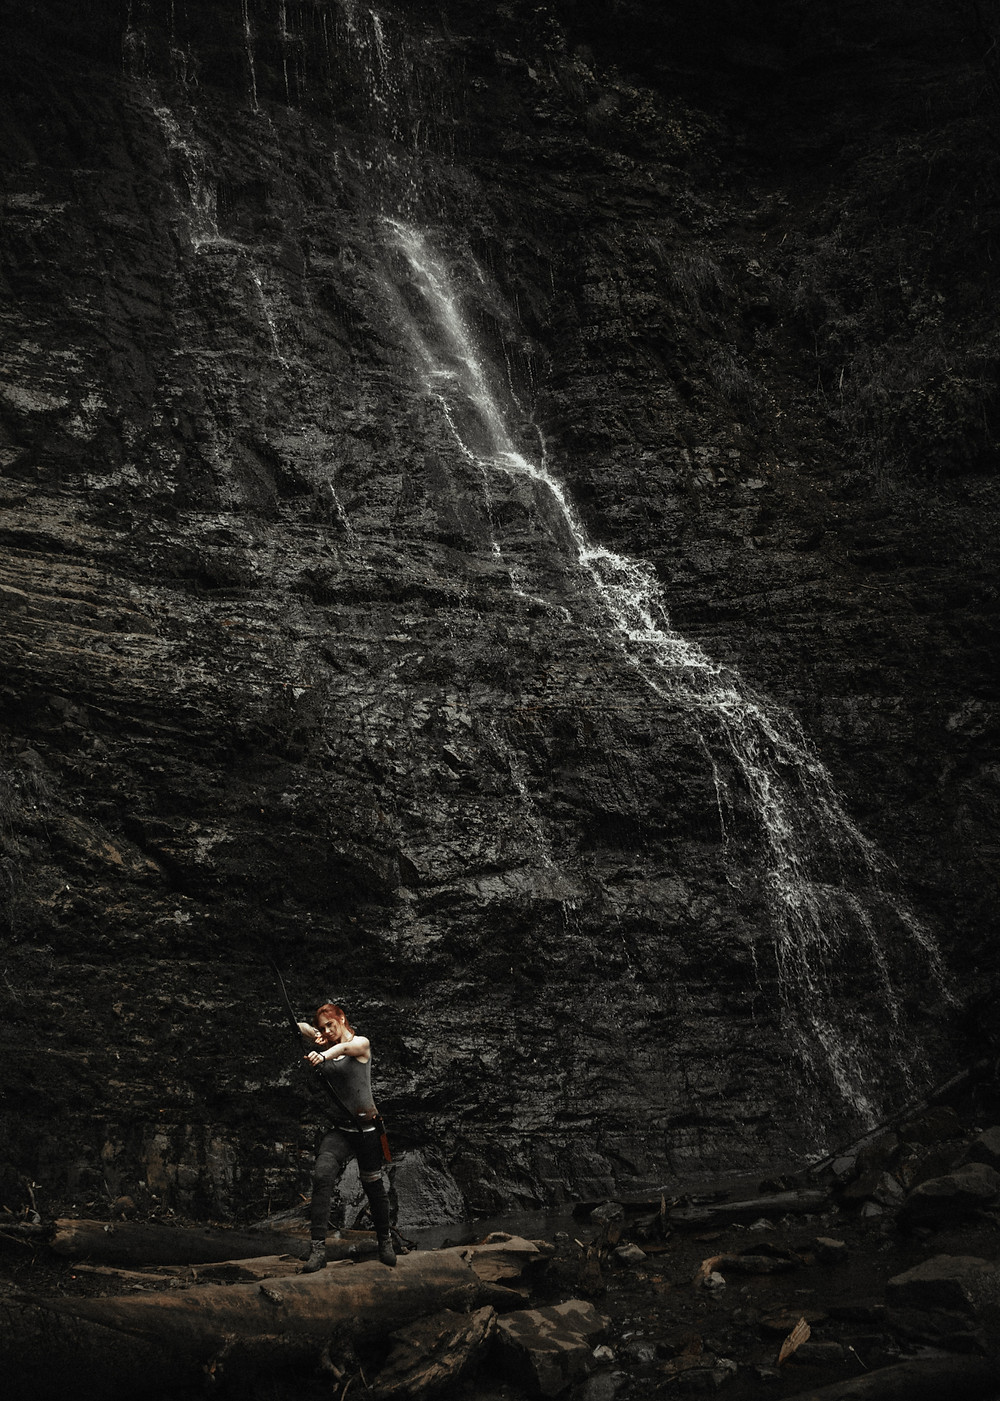 Lara Croft at the bottom of a bad ass rock formation and waterfall